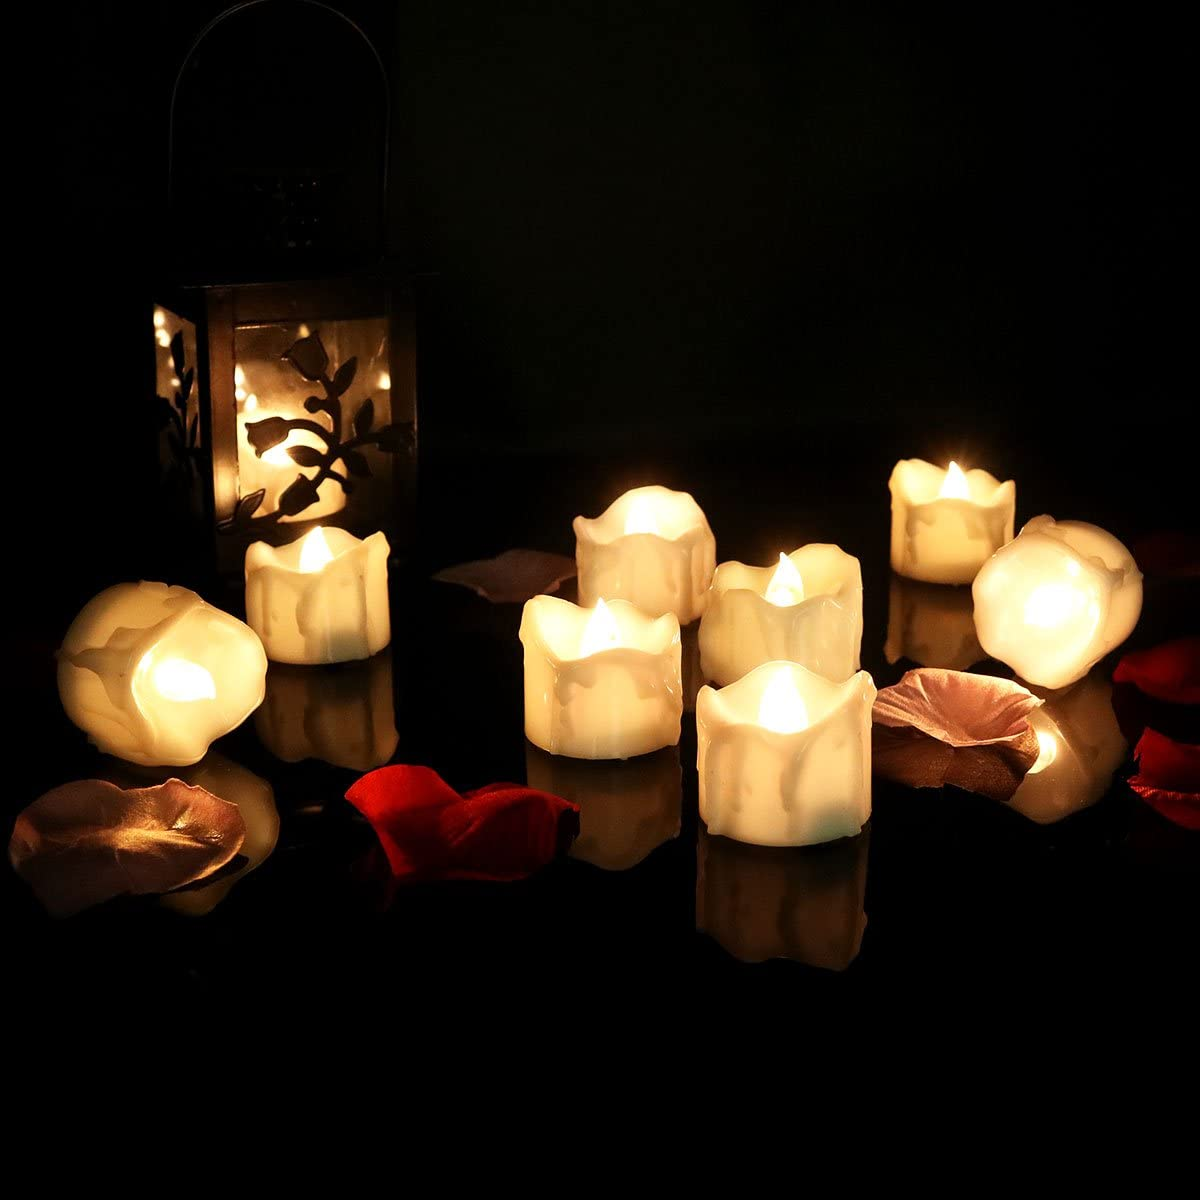 Cozeyat 96pcs Wax-drip Battery Operated Tea Lights, Flameless Votives, Flickering LED Candles for Dinner Table Setting, Centerpiece, Wedding, Anniversary, Birthday Party